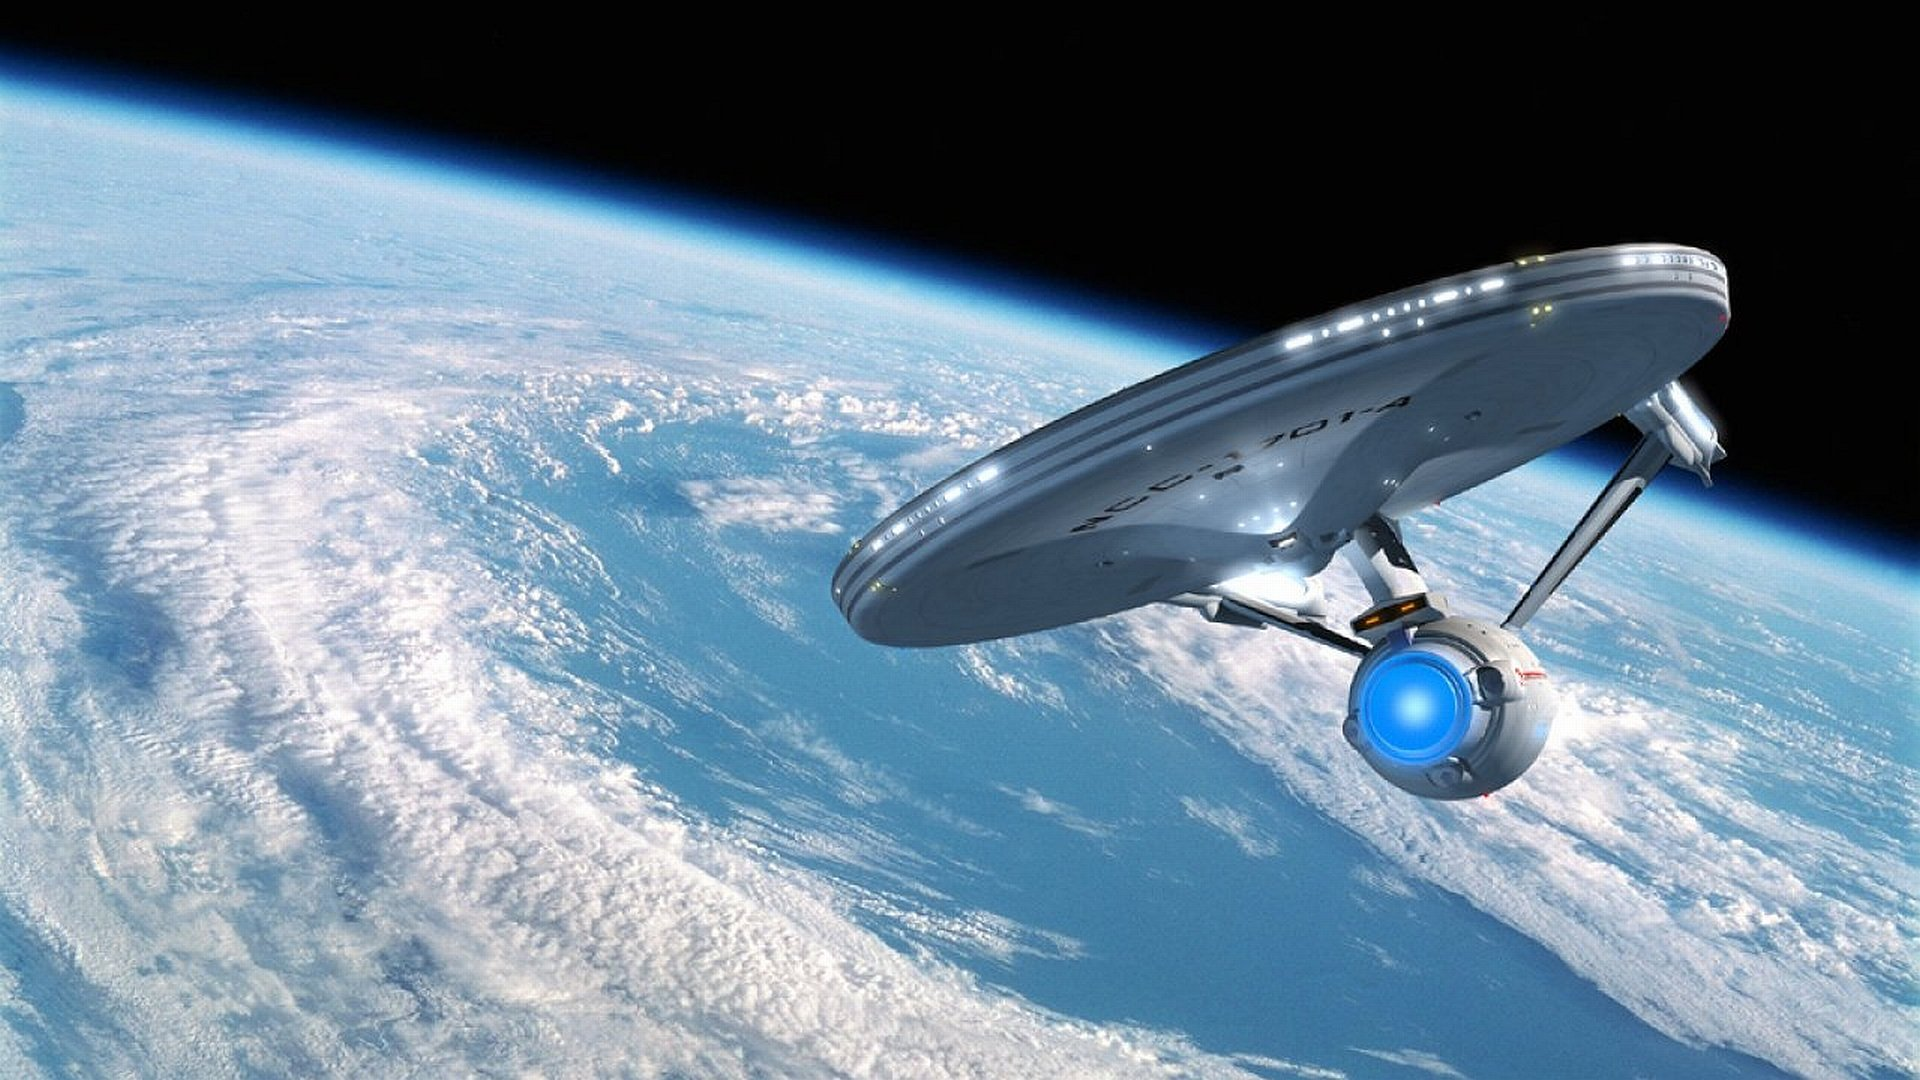 Sci Fi Star Trek Wallpaper Desktop | ImageBank.biz